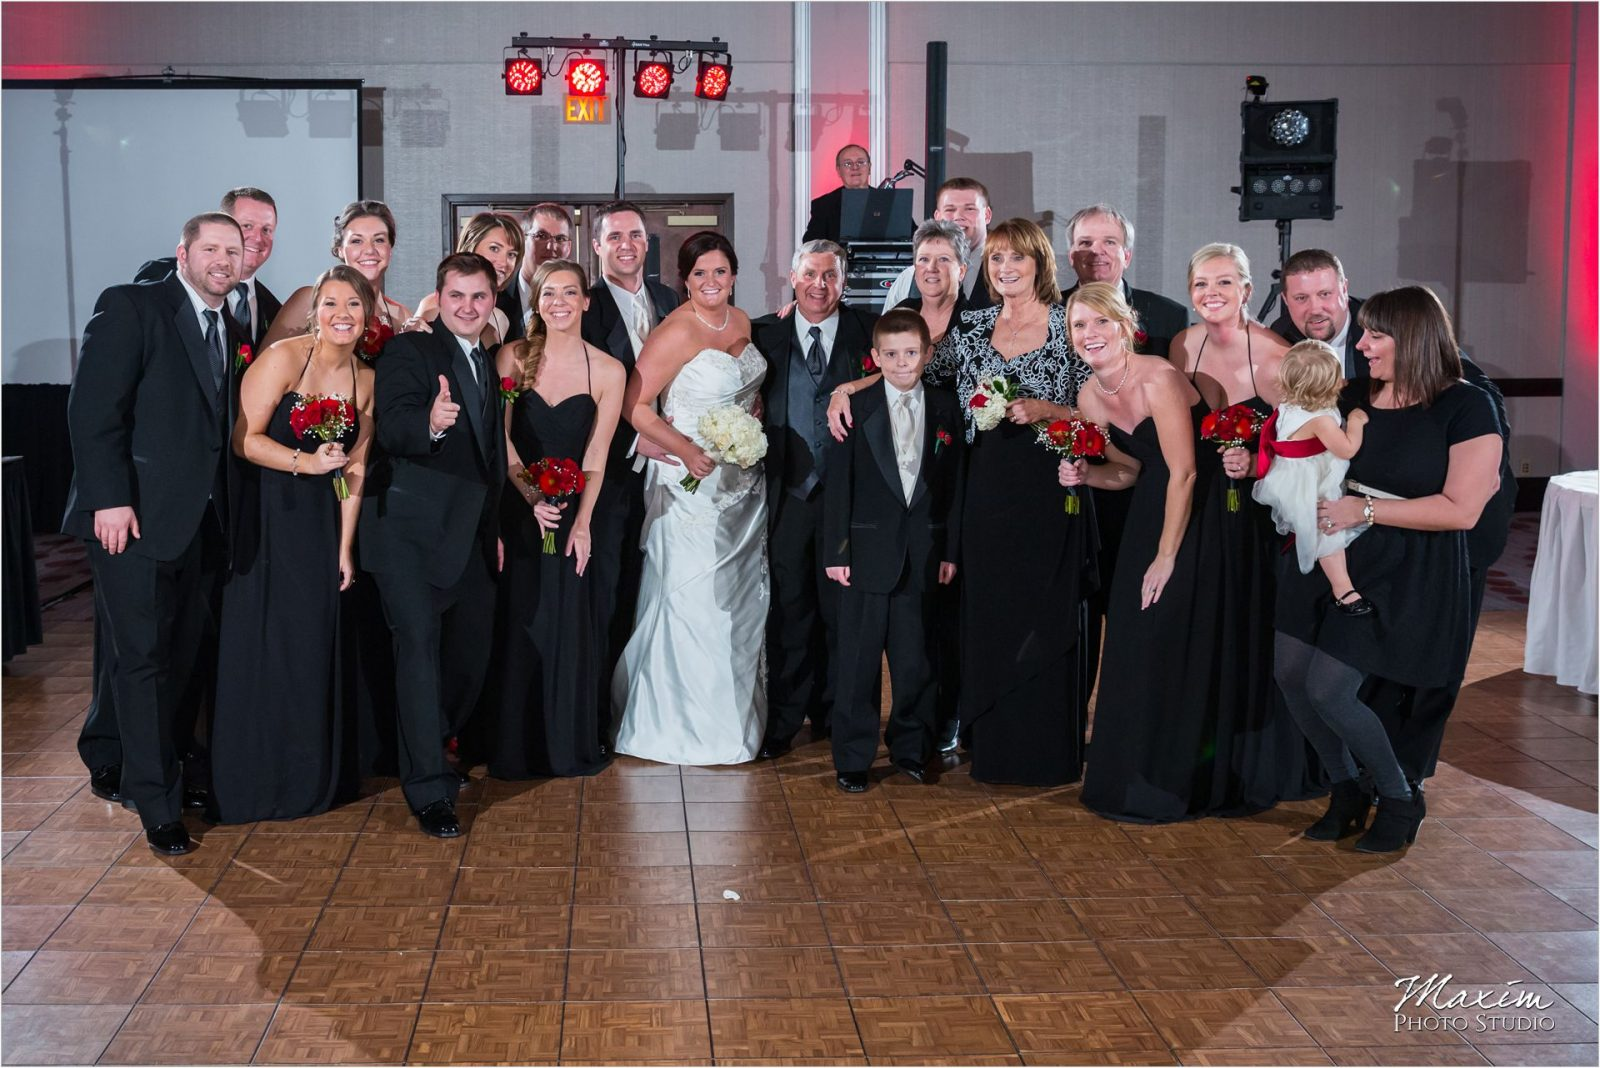 Hyatt Cincinnati Wedding Bridal Party